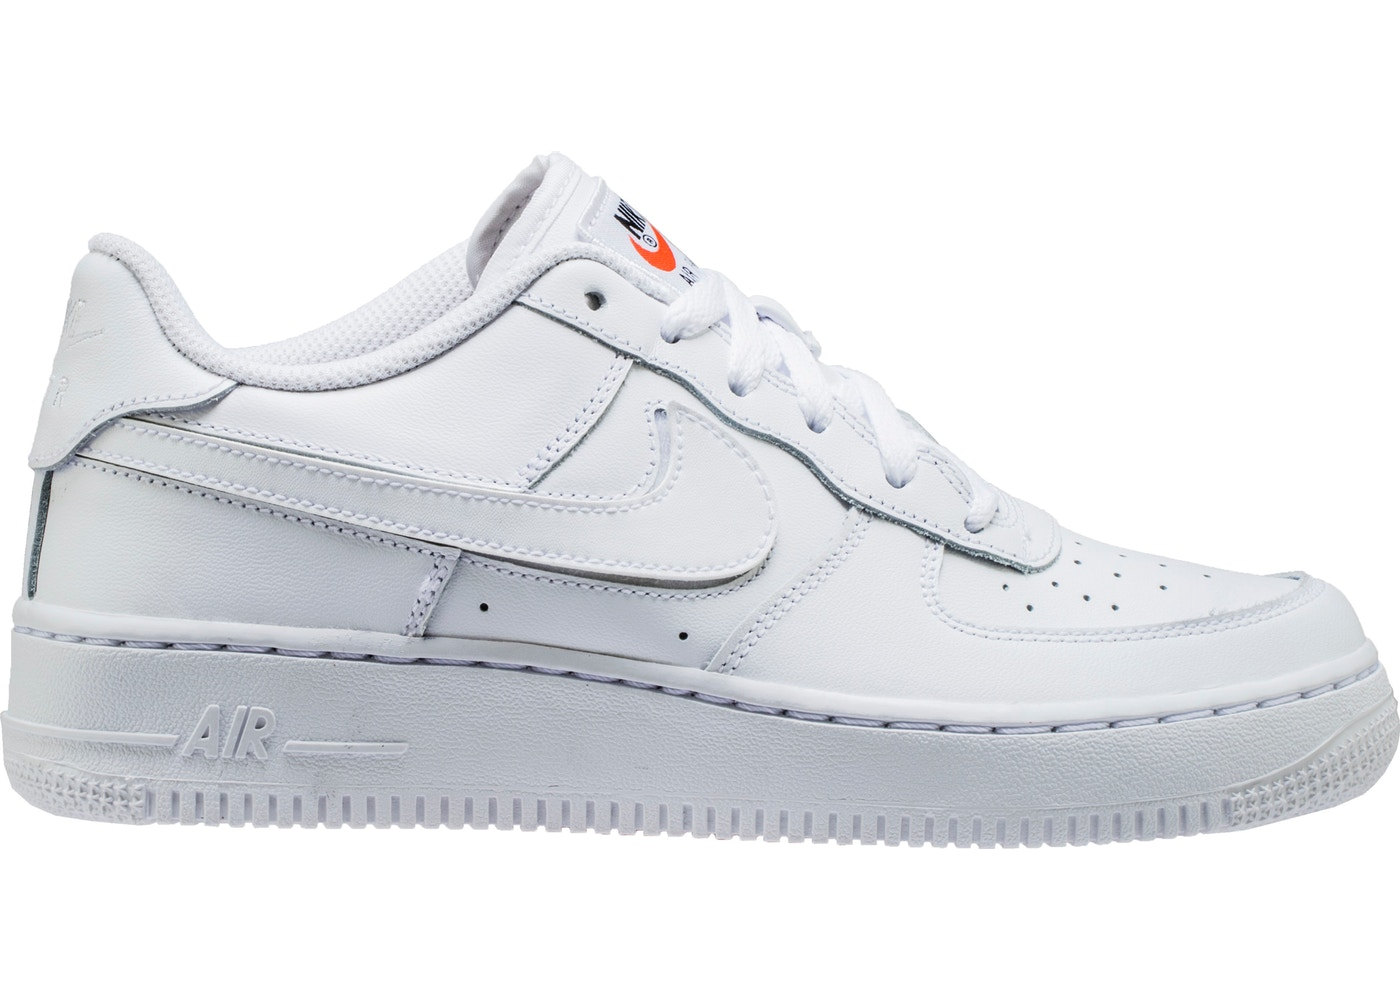 4ef9768ec5e1b9 Air Force 1 Low Swoosh Pack All-Star 2018 White (GS) - AQ9942-100